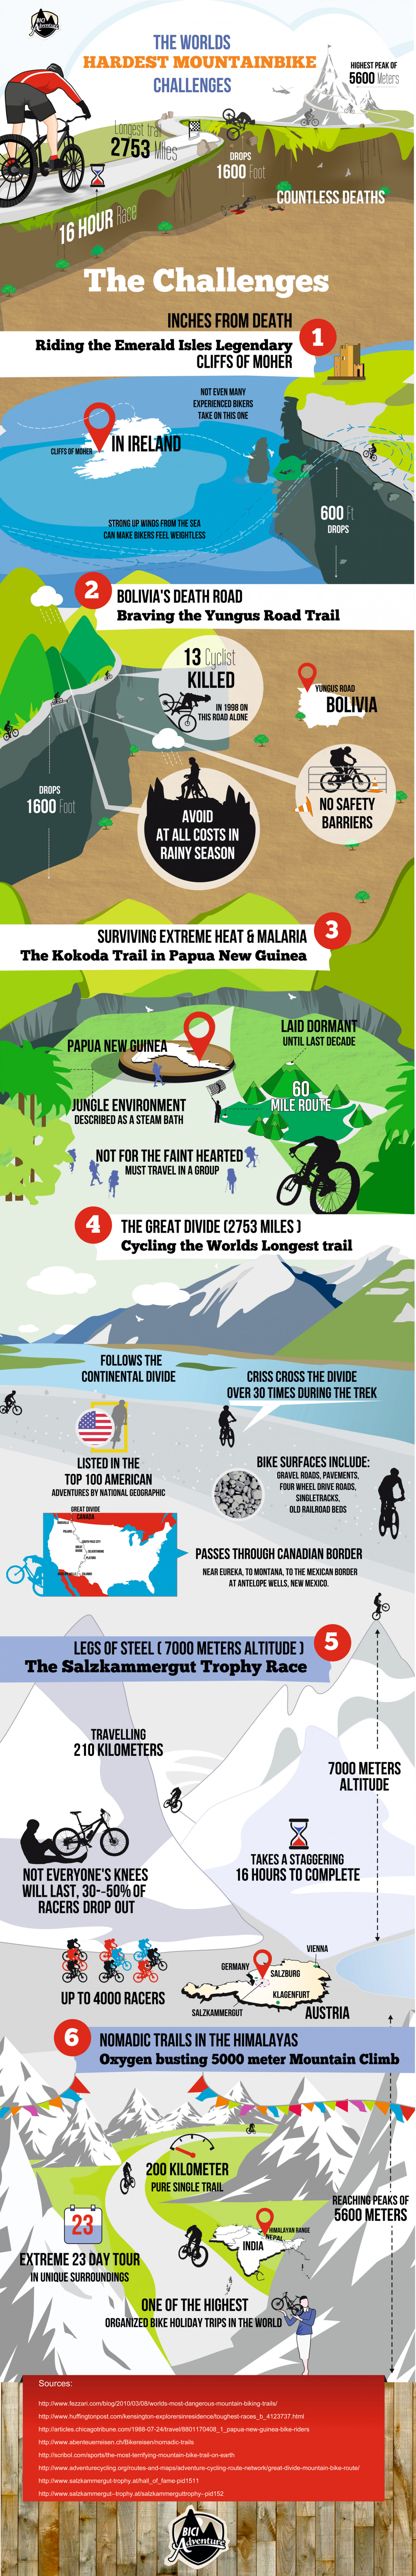 The Worlds Hardest Mountain Bike Challenges Infographic